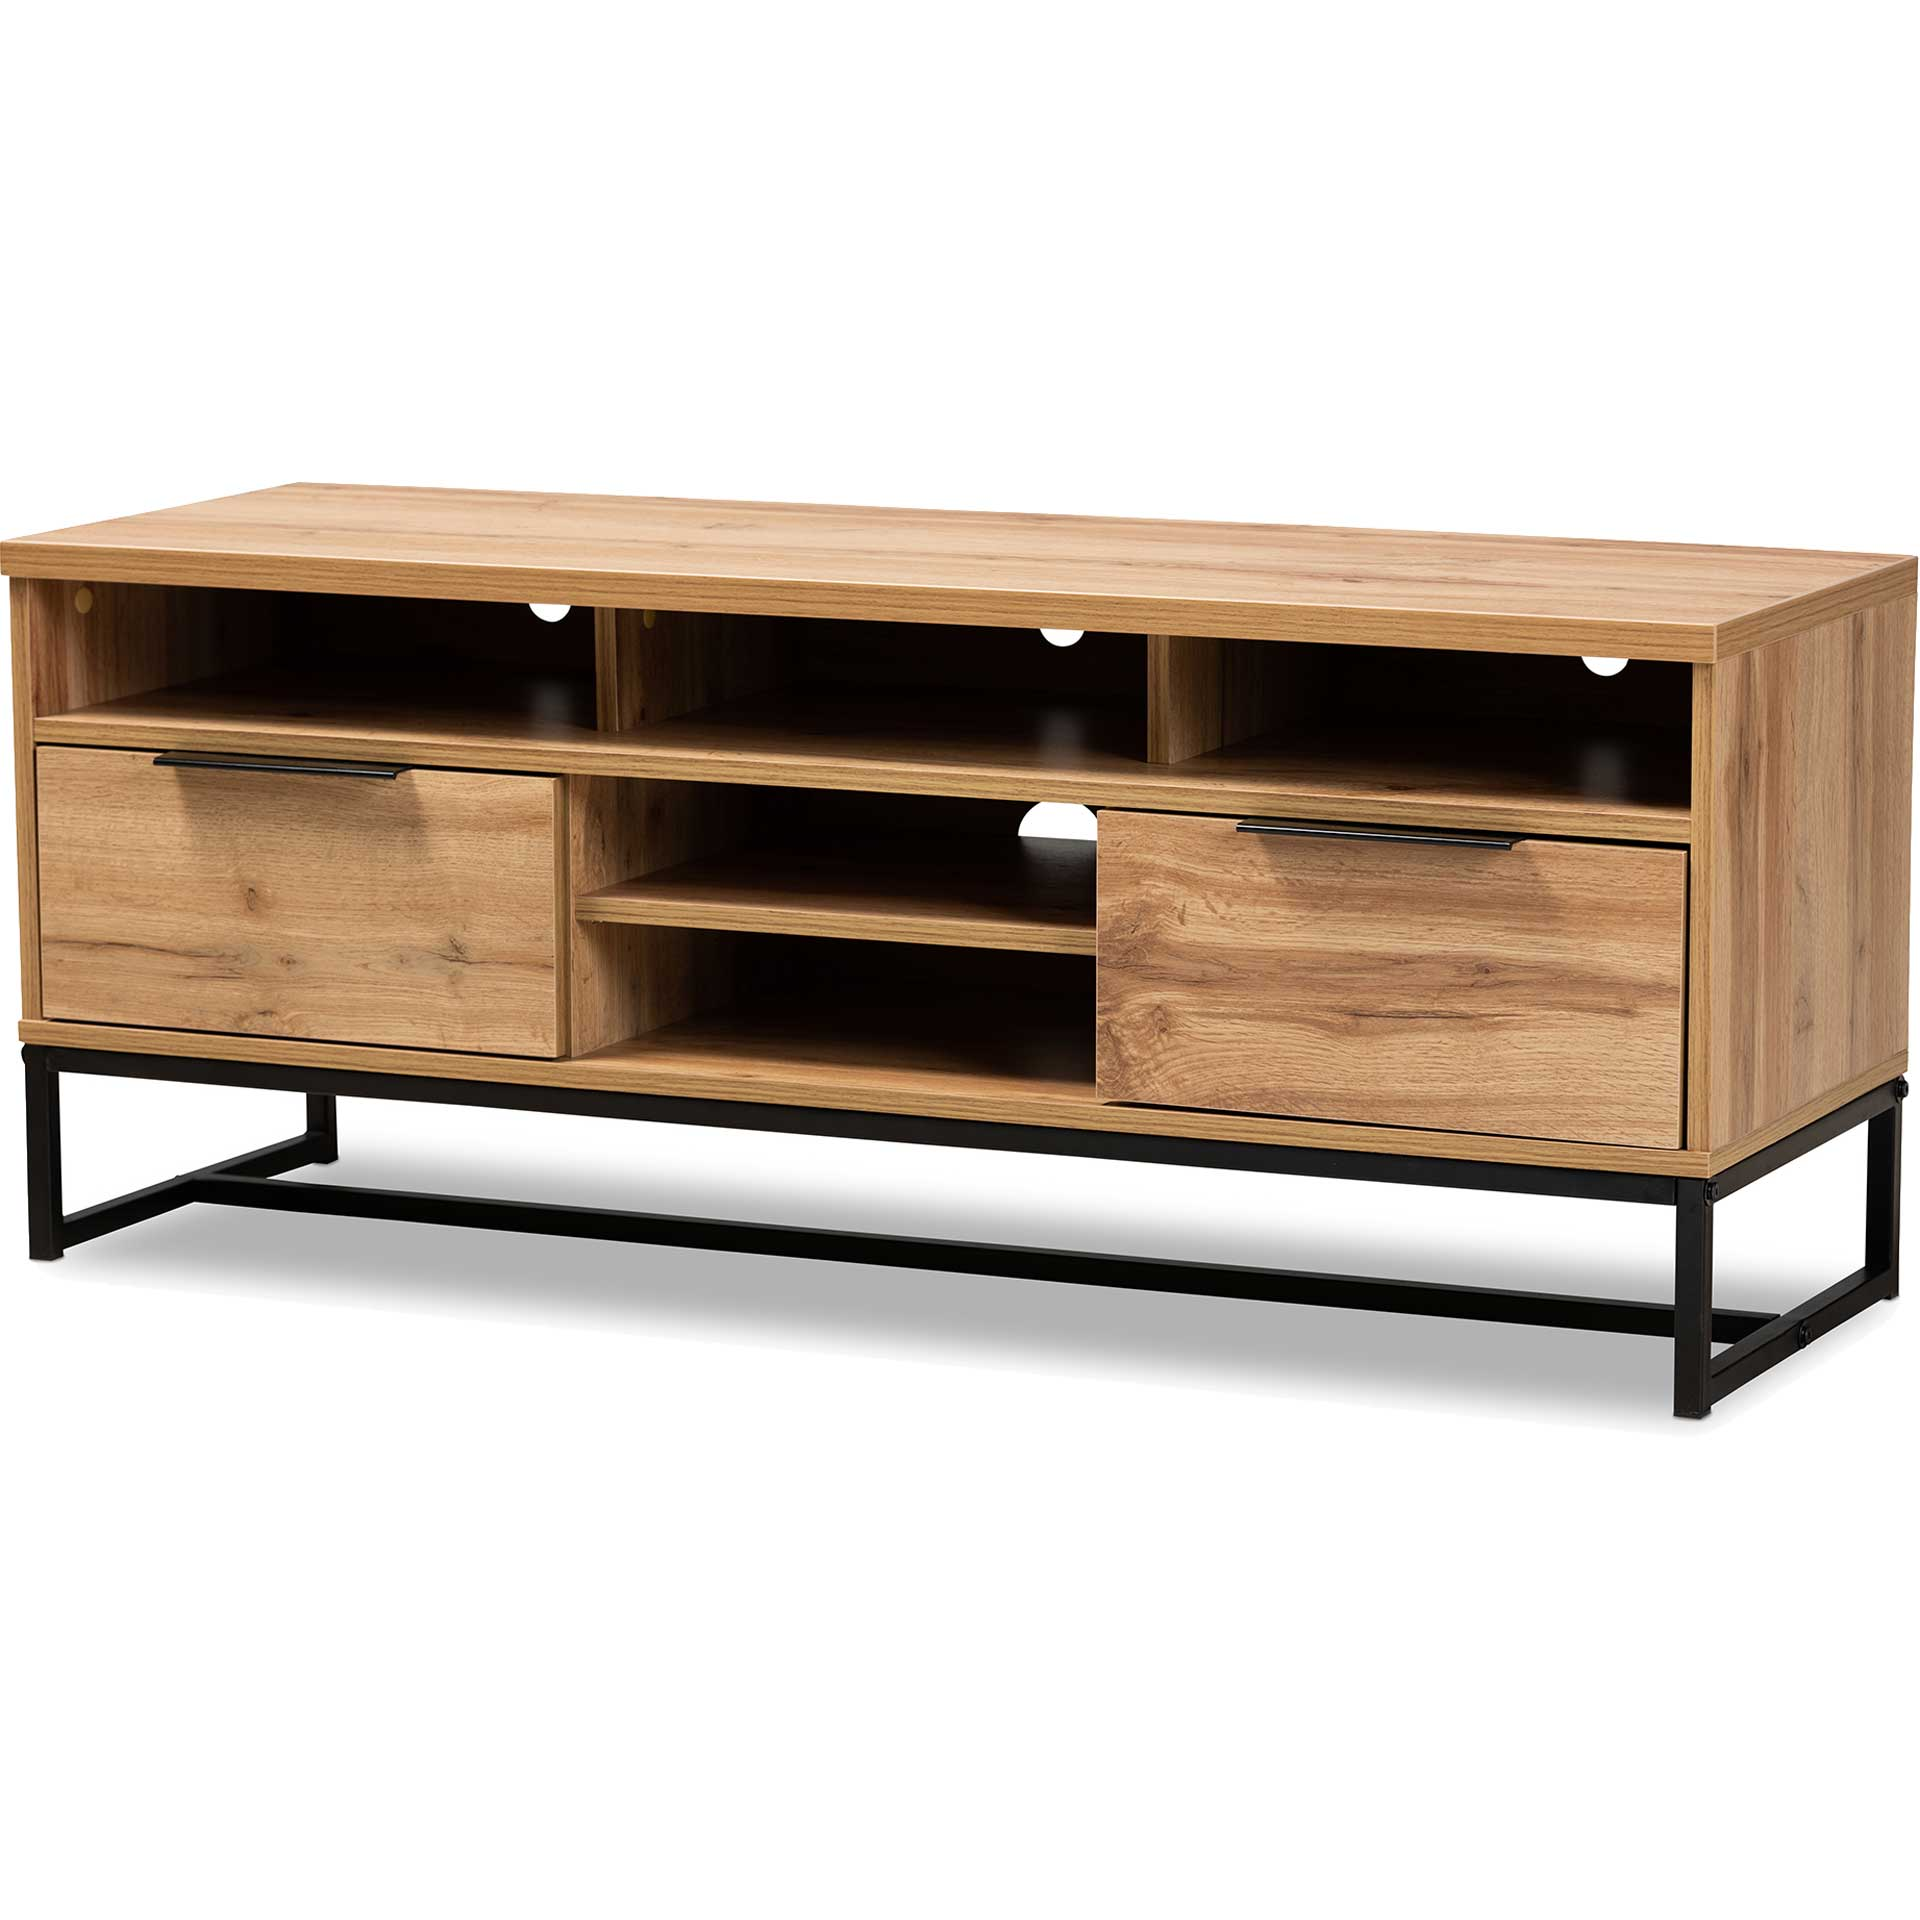 Realyn 2-Drawer TV Stand Oak/Black